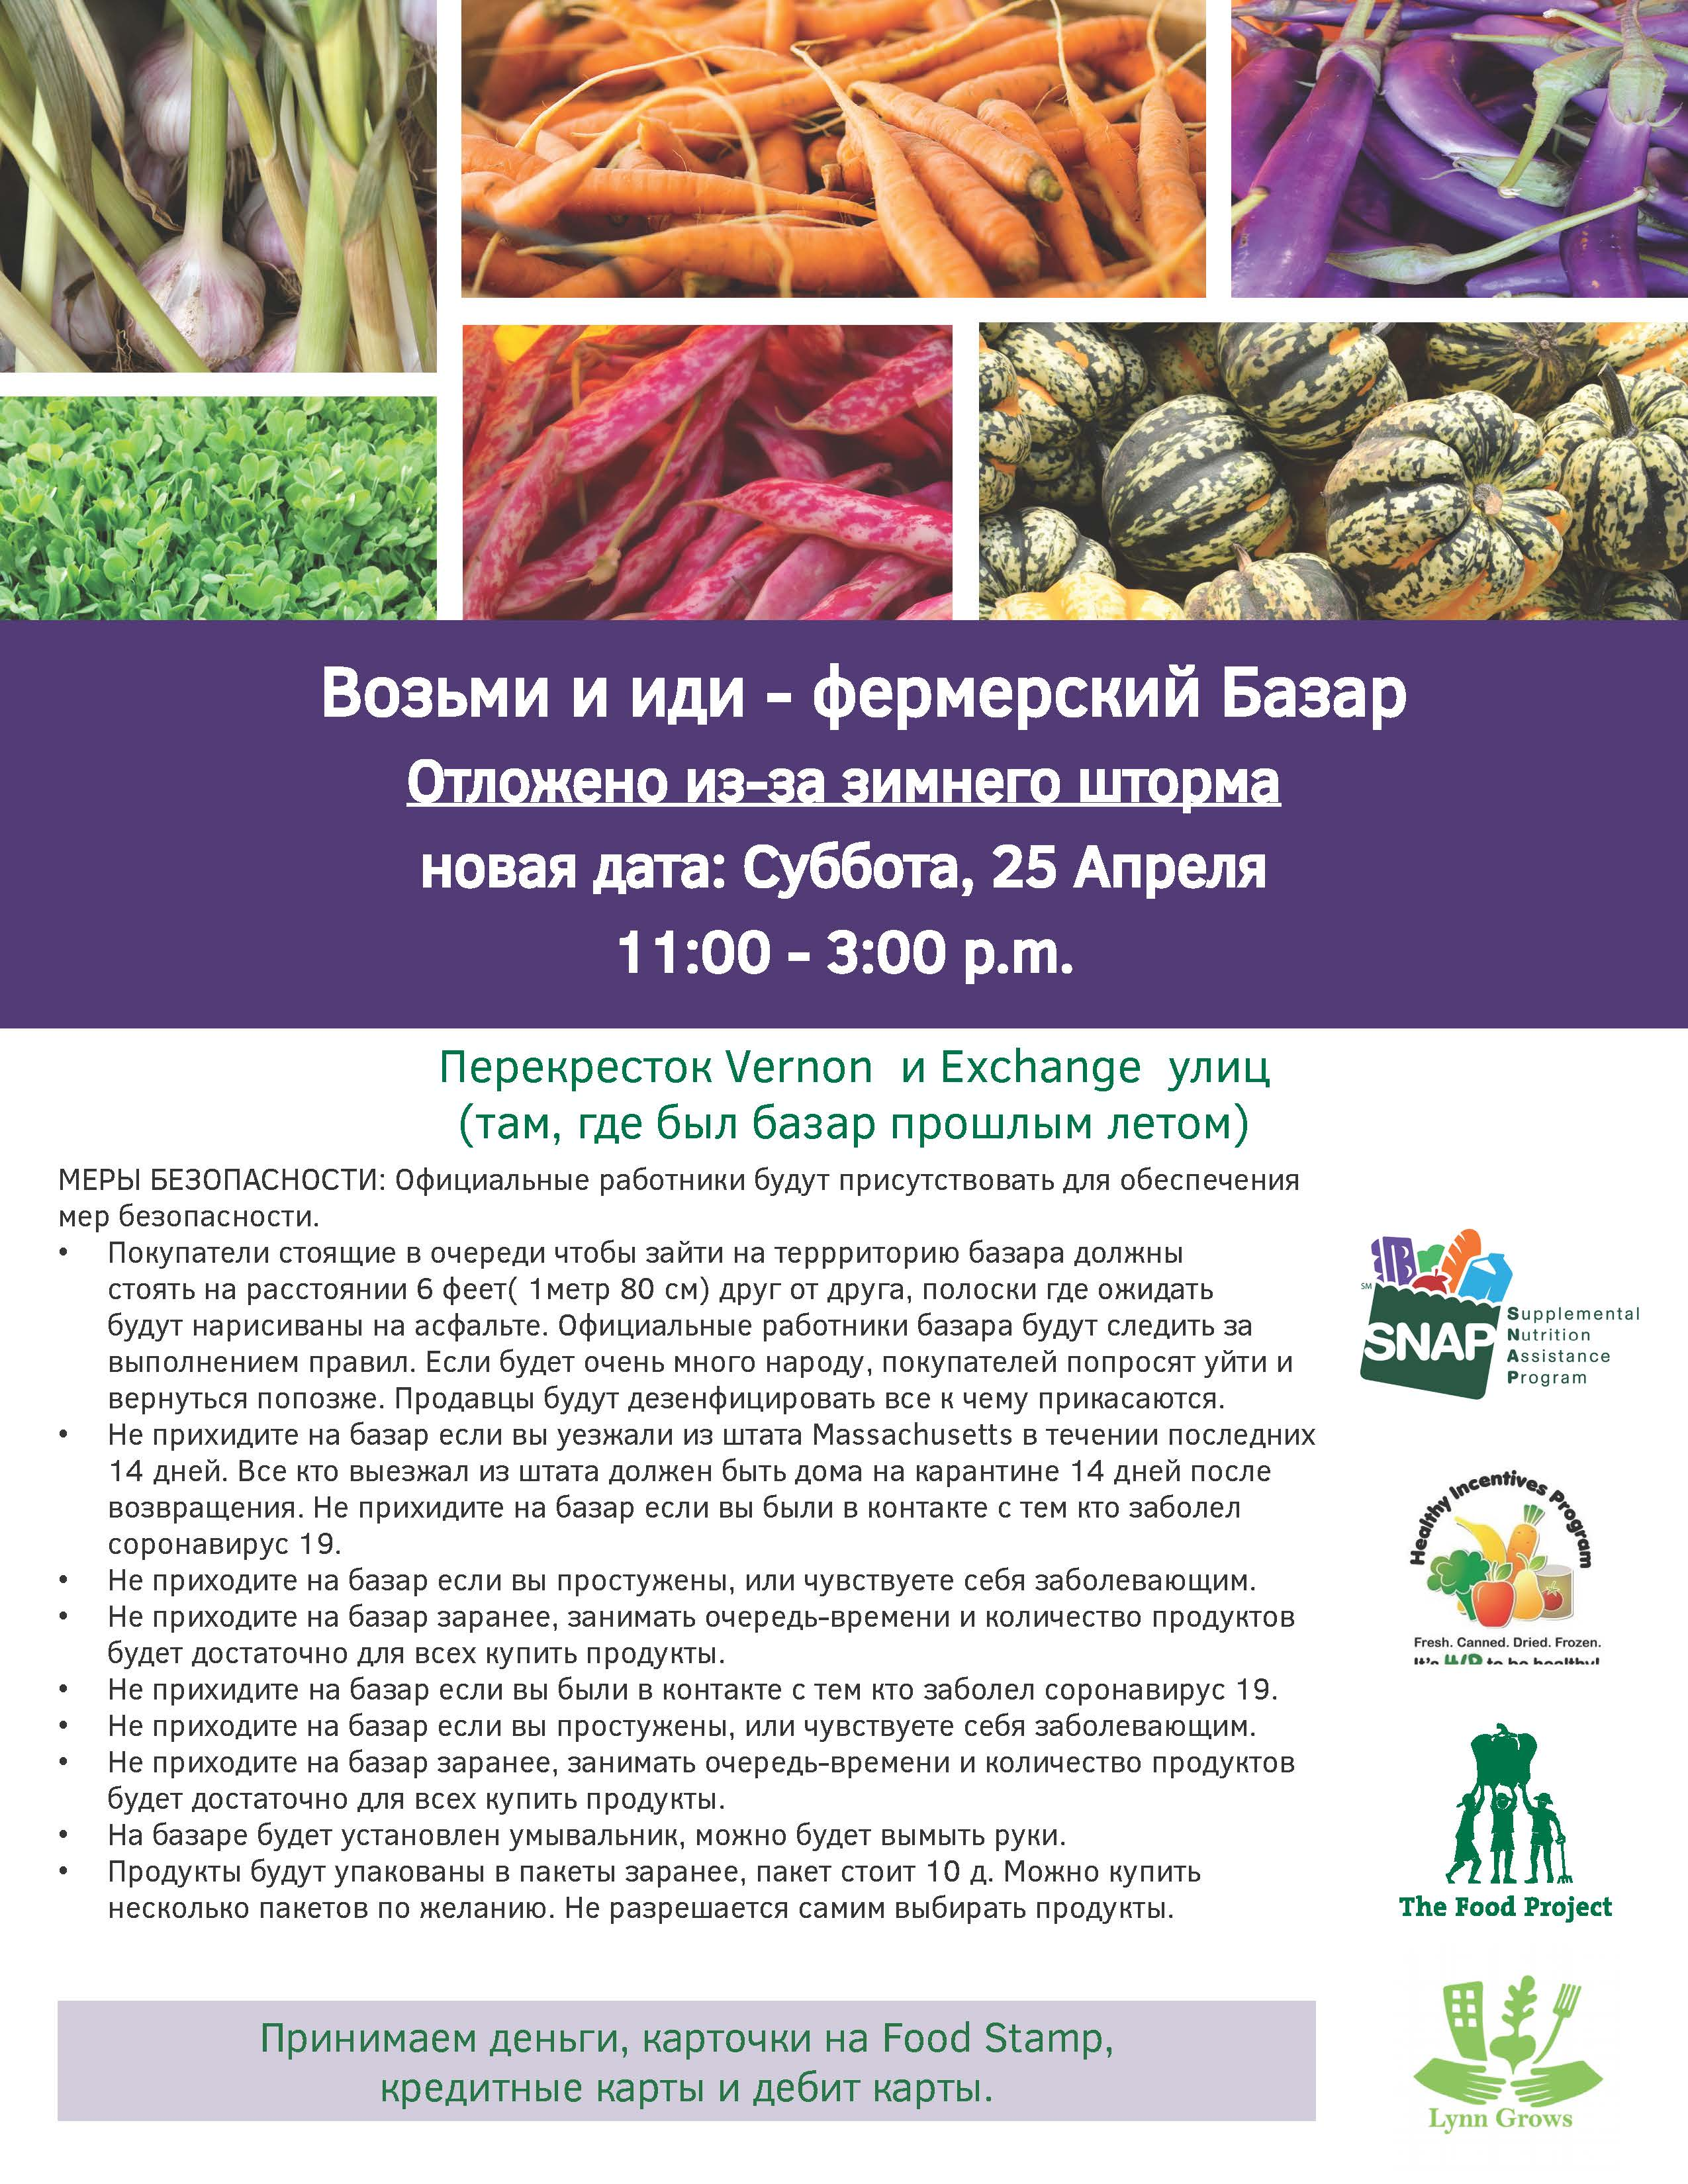 FINAL FINAL April 25 Lynn Farmers Market Flyer - RUSSIAN.jpg